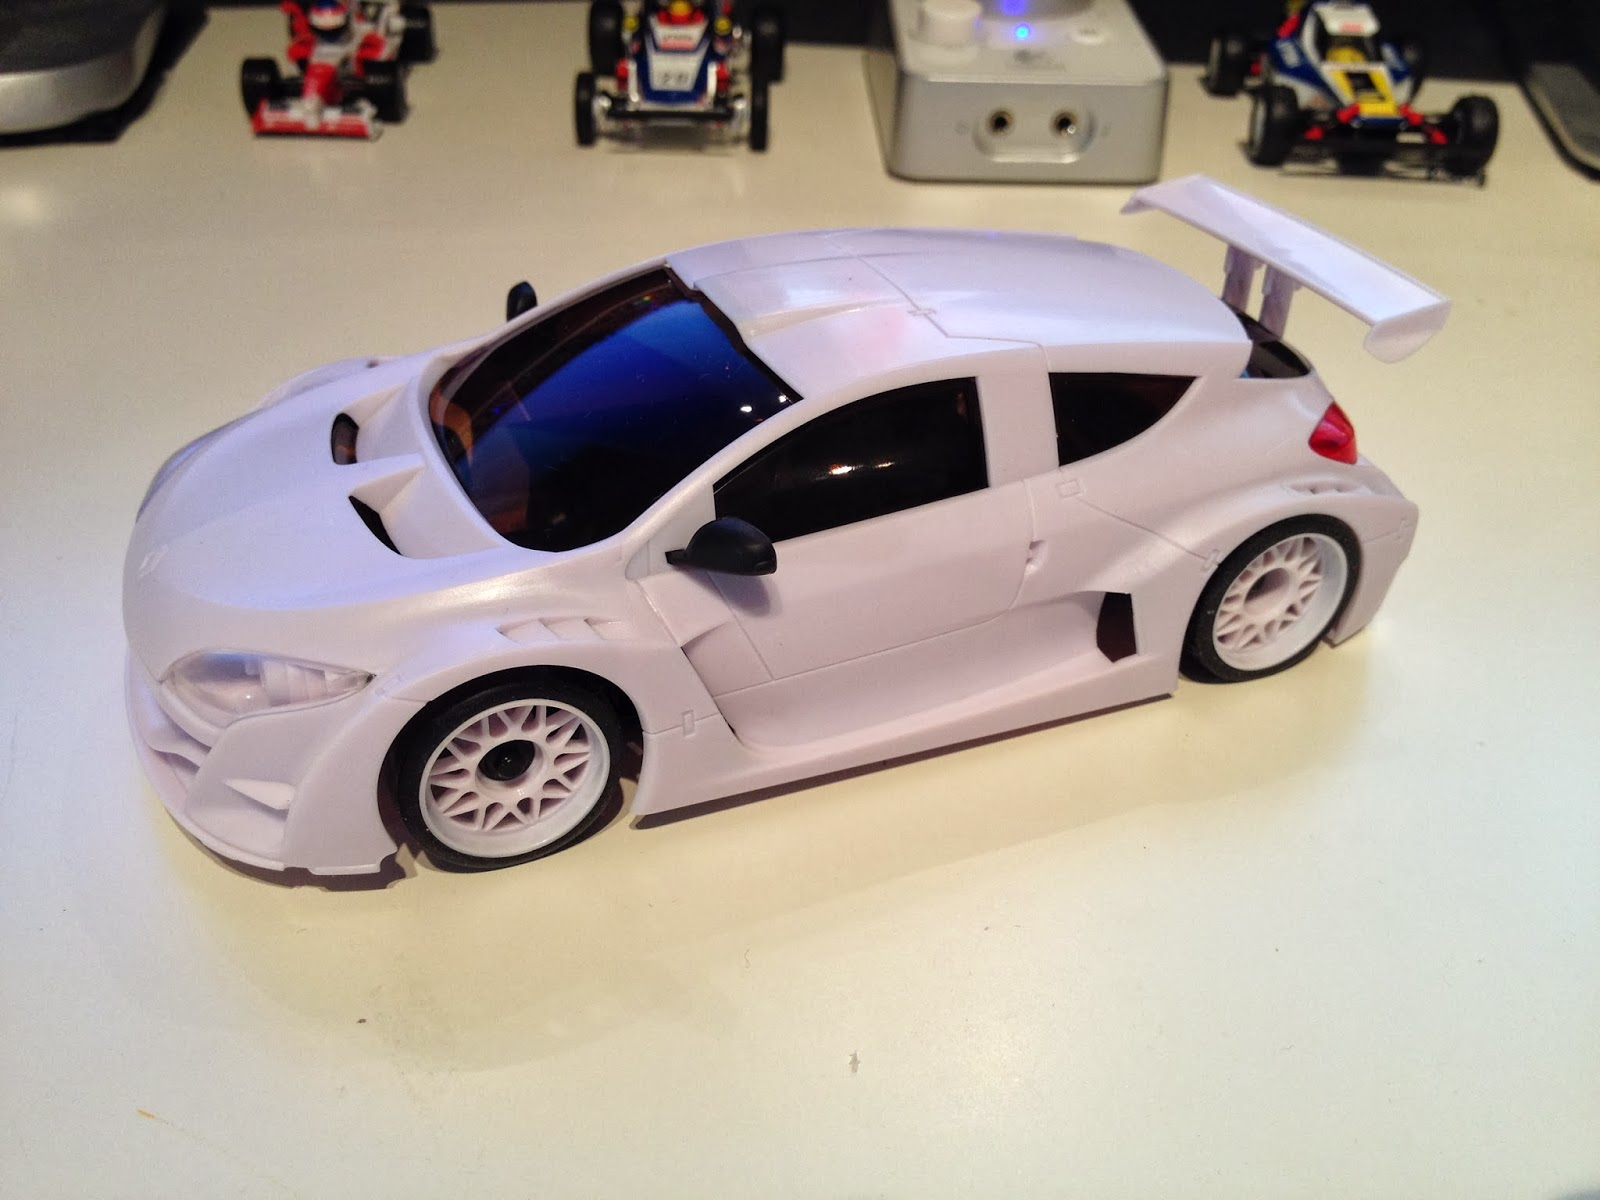 KYOSHOSAN: In Depth Review: TRP Scale Megane Trophy 2010